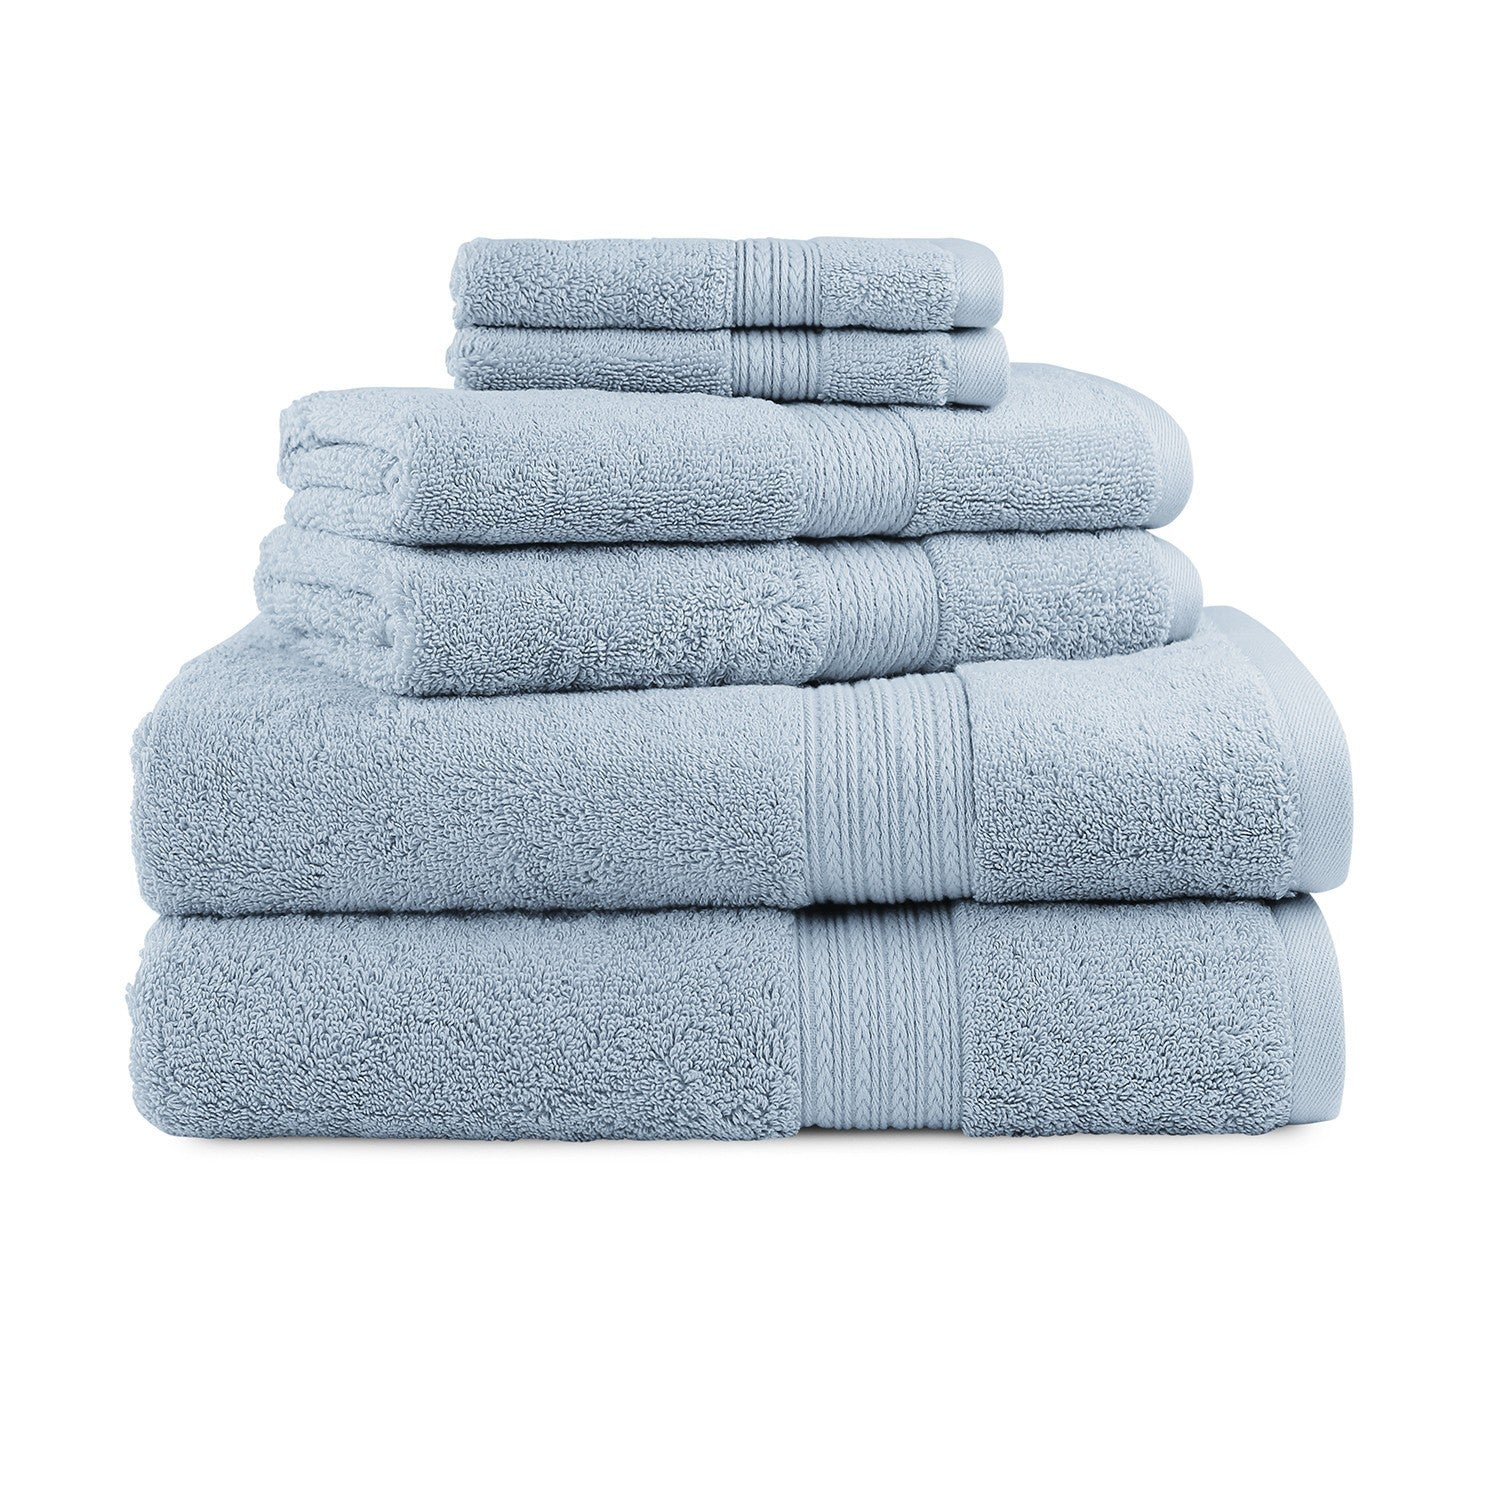 Home  Bathroom  Bath Towels   Maui Luxury Hotel Resort Bath Towels   Sets Of. Bath  Towels  Sets   Maui Luxury Hotel Resort Bath Towels   Robert